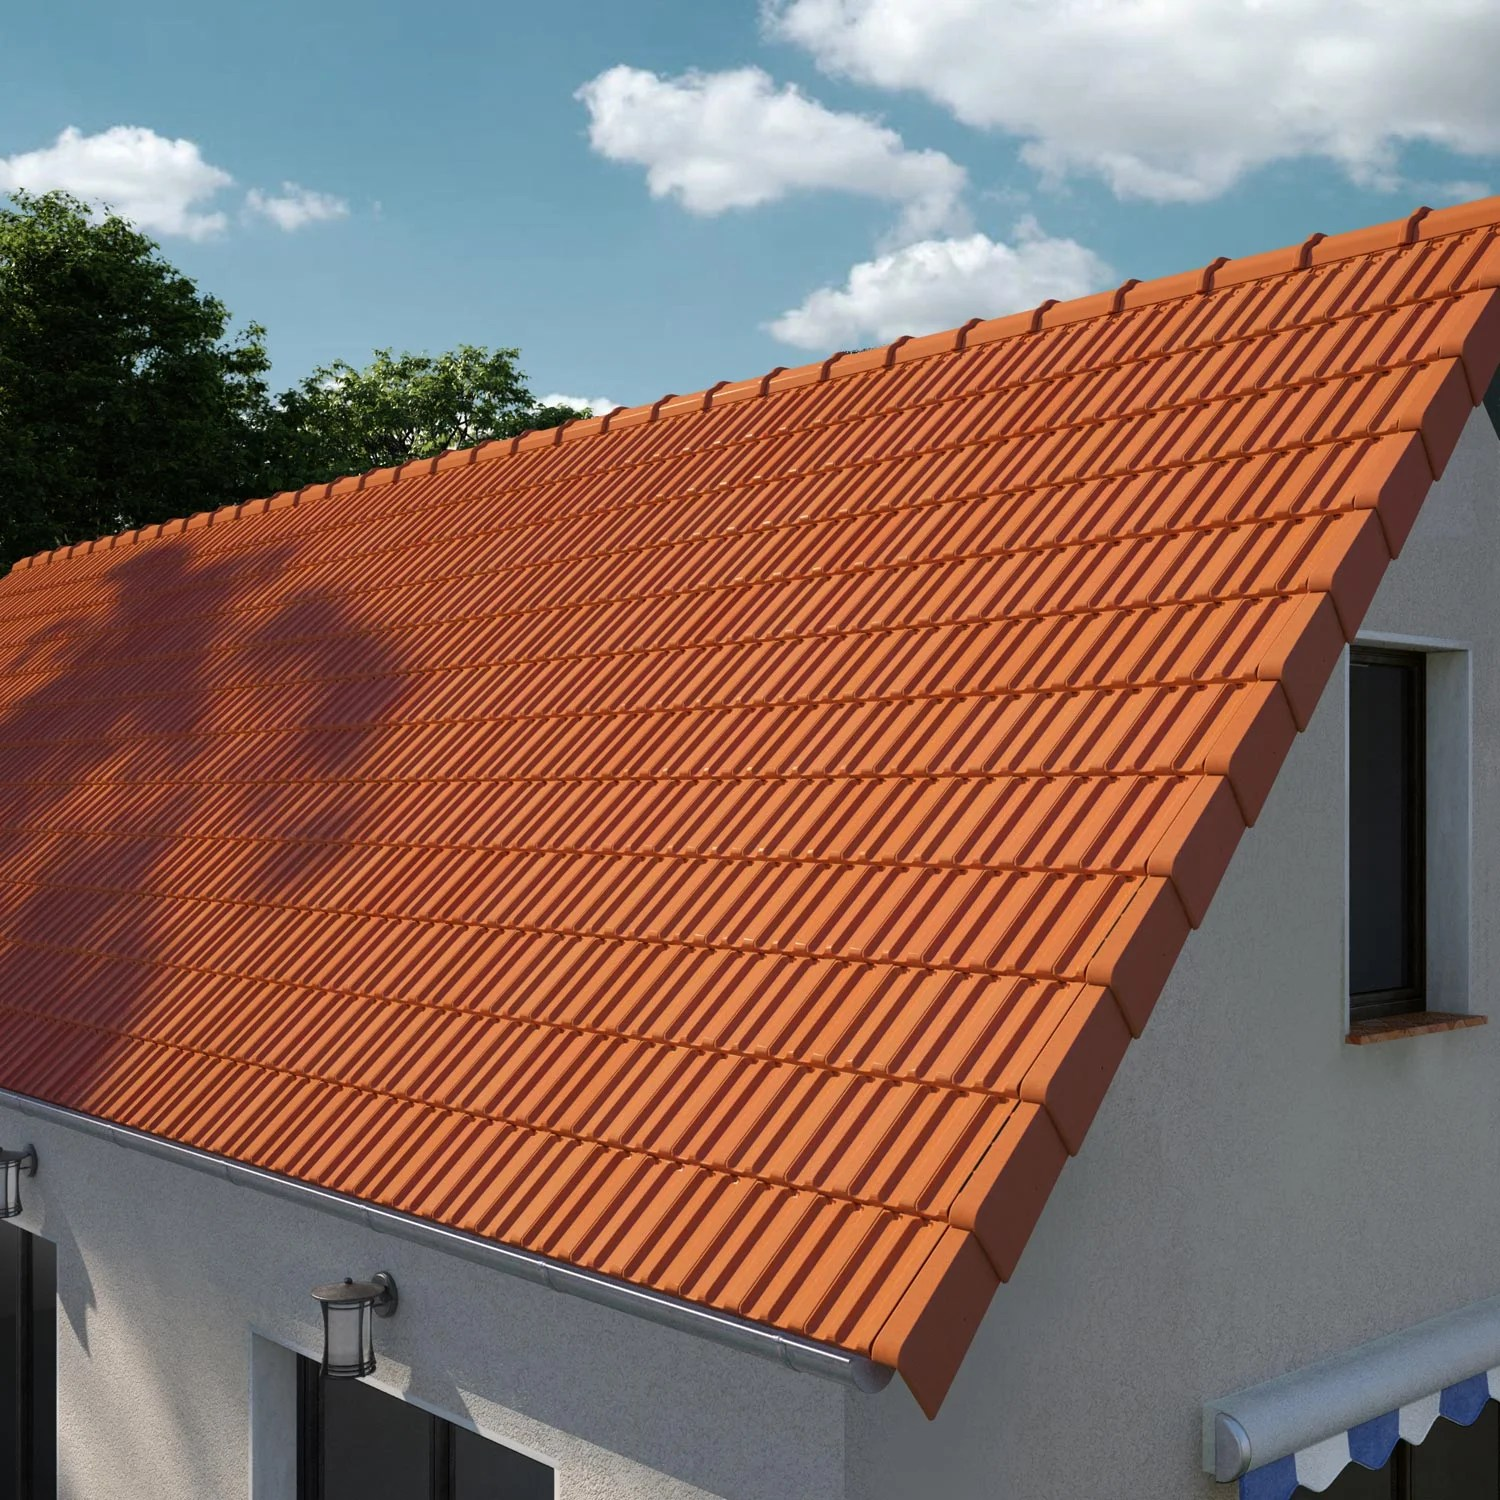 Remplacement Tuiles Prix M2 Tuile Imerys Toiture Rouge H14